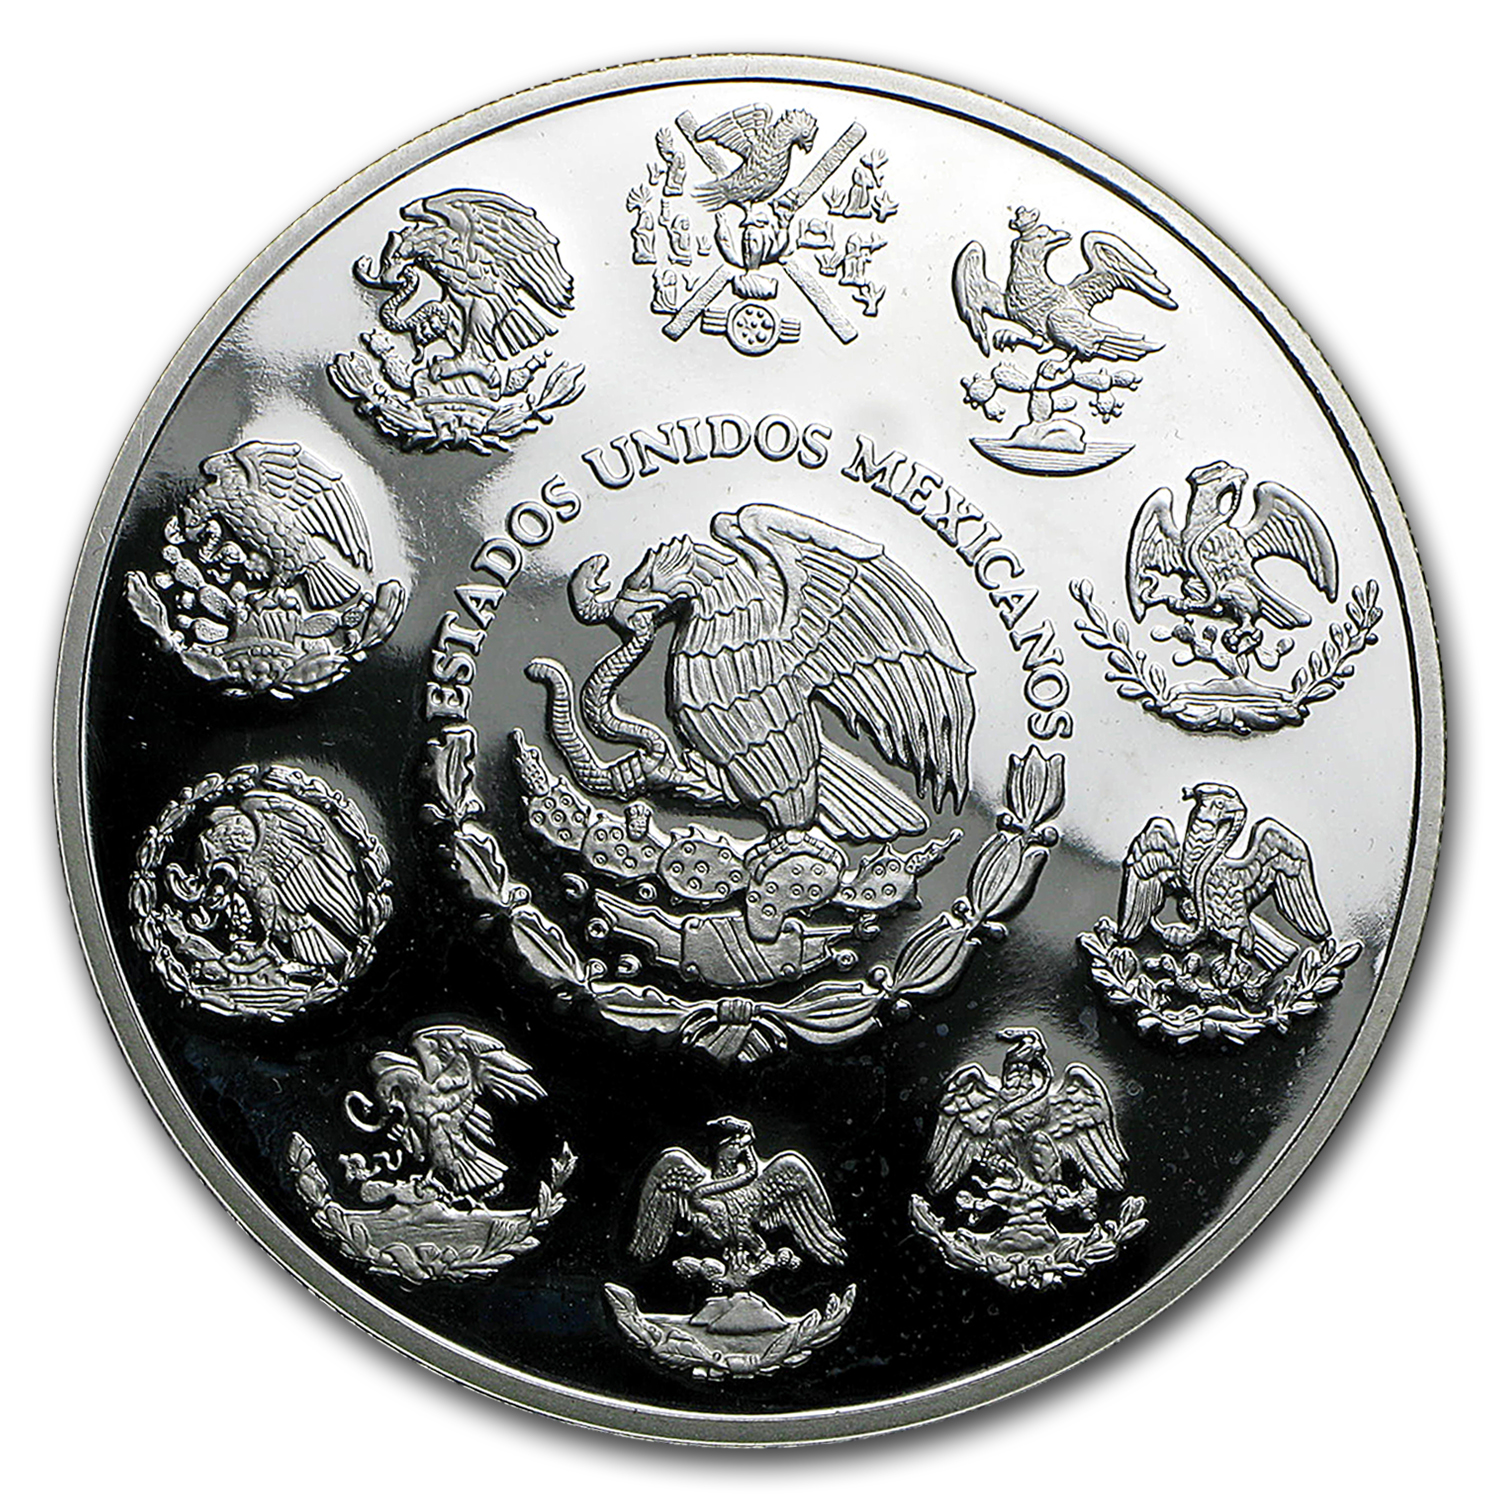 2006 2 oz Silver Mexican Libertad - Proof (In Capsule)